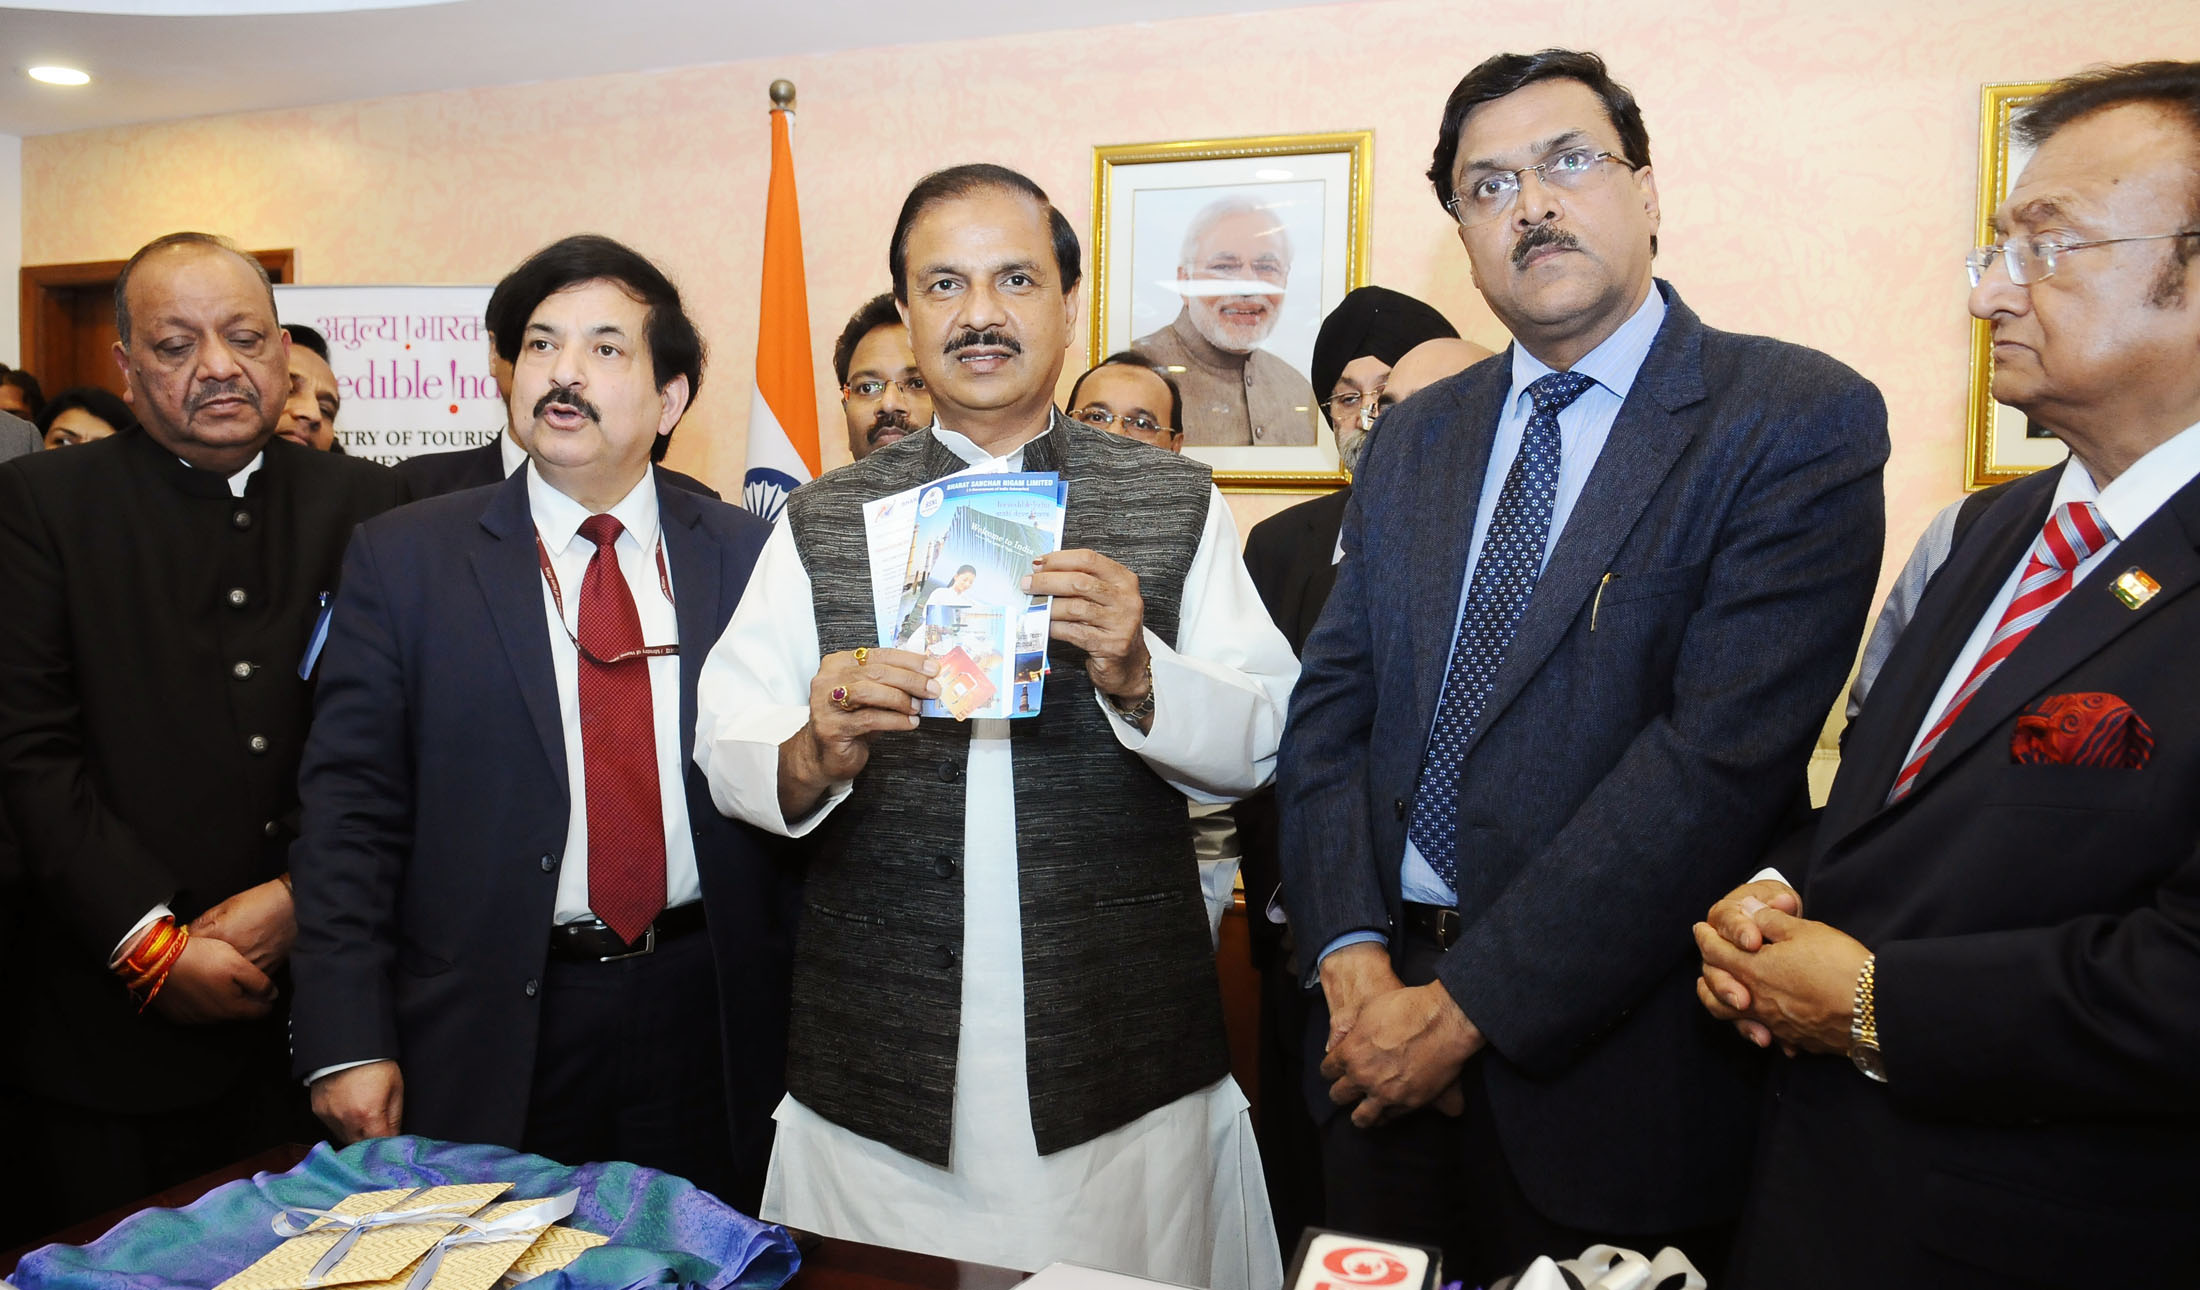 Minister of Culture Mahesh Sharma at the launch of free pre-loaded SIM Cards for tourists arriving in India on e-visa in New Delhi (Photo courtesy: Indian Ministry of Culture